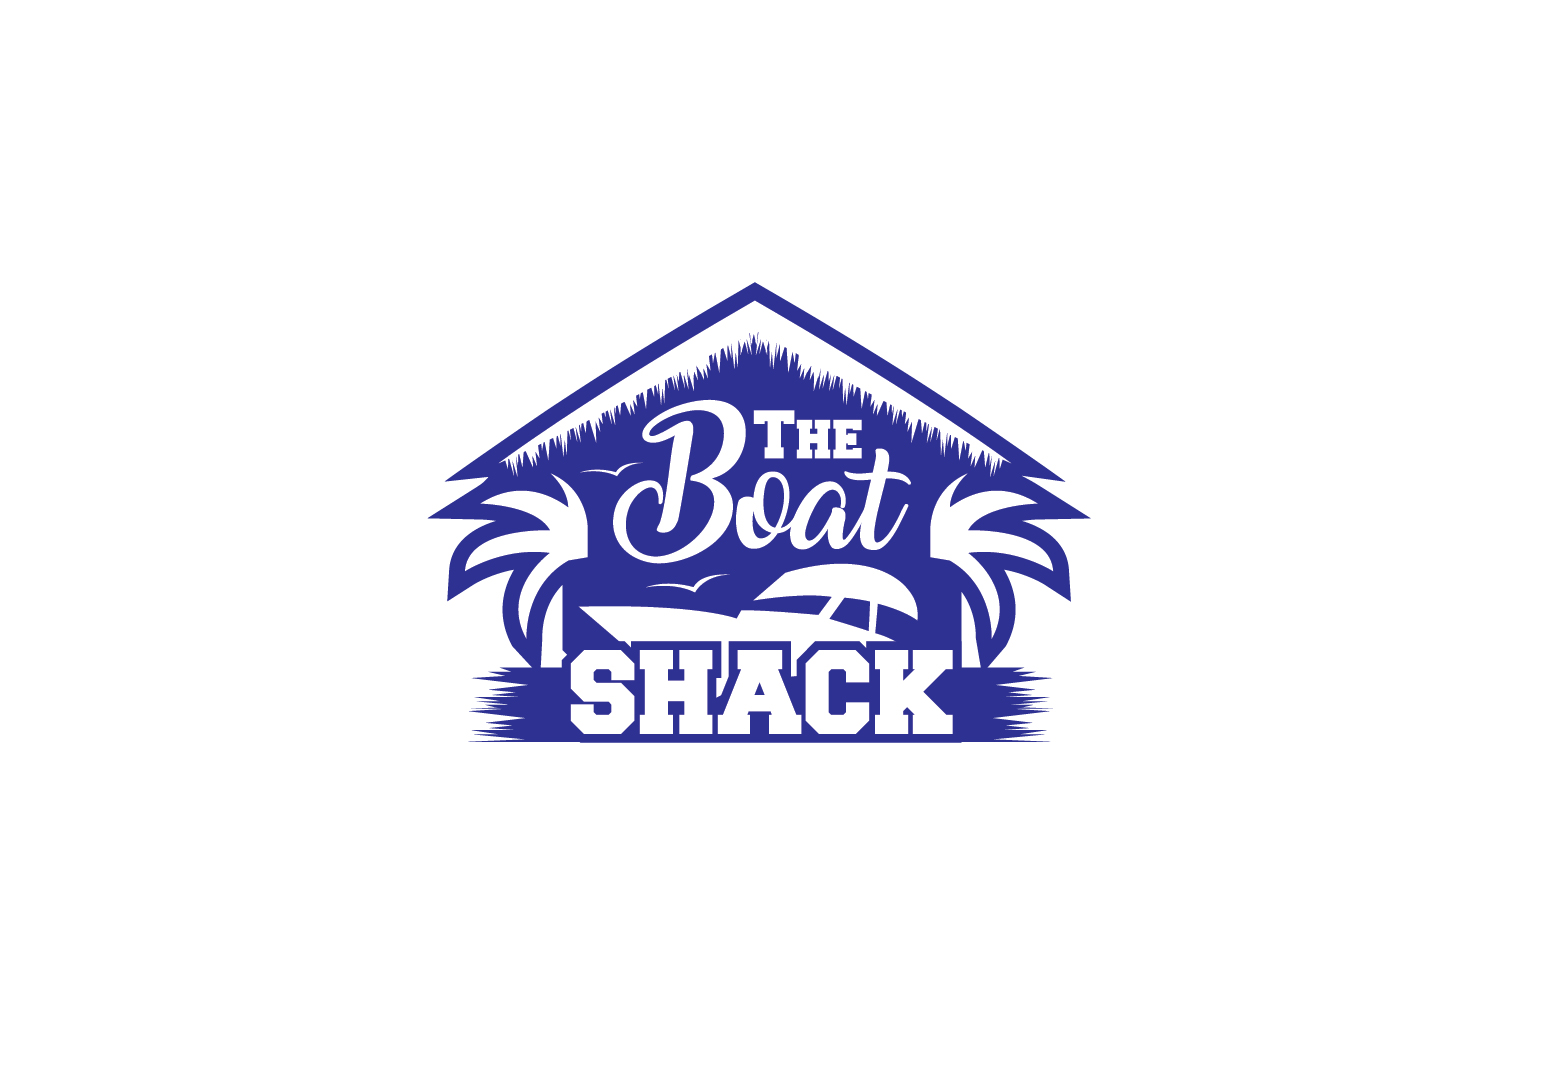 Personable, Colorful Logo Design for The Boat Shack by.